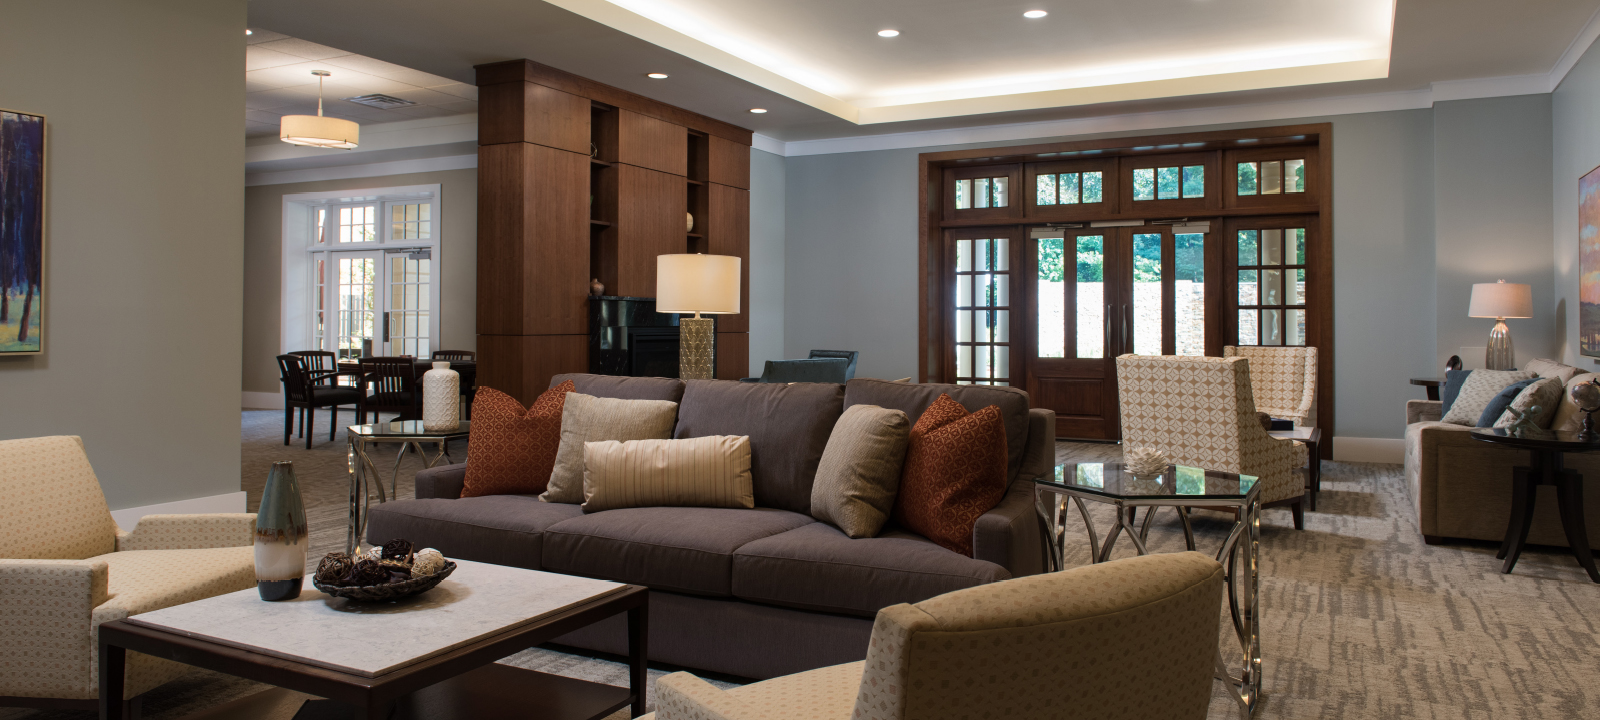 lobby at Meridian at Eagleview apartments in Exton PA